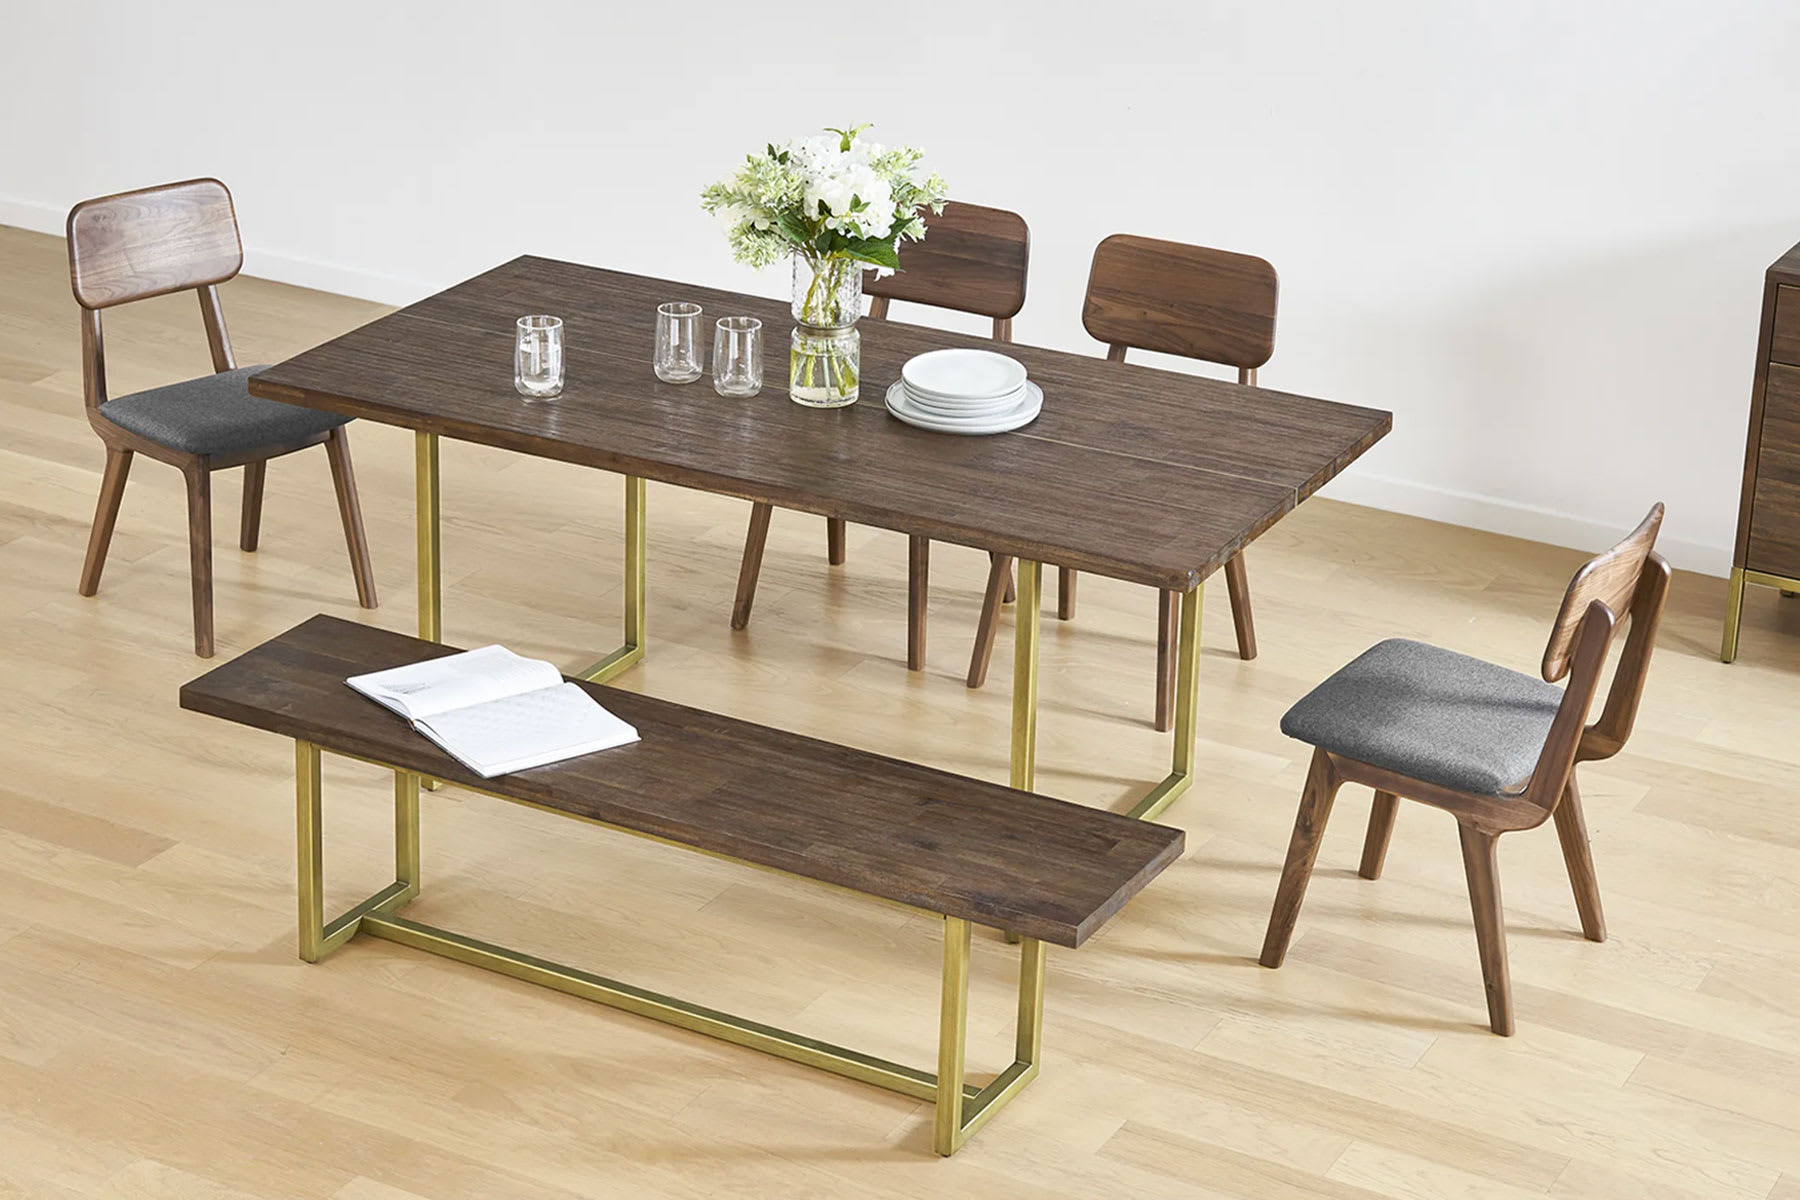 wood dining set with dining table, bench and chairs